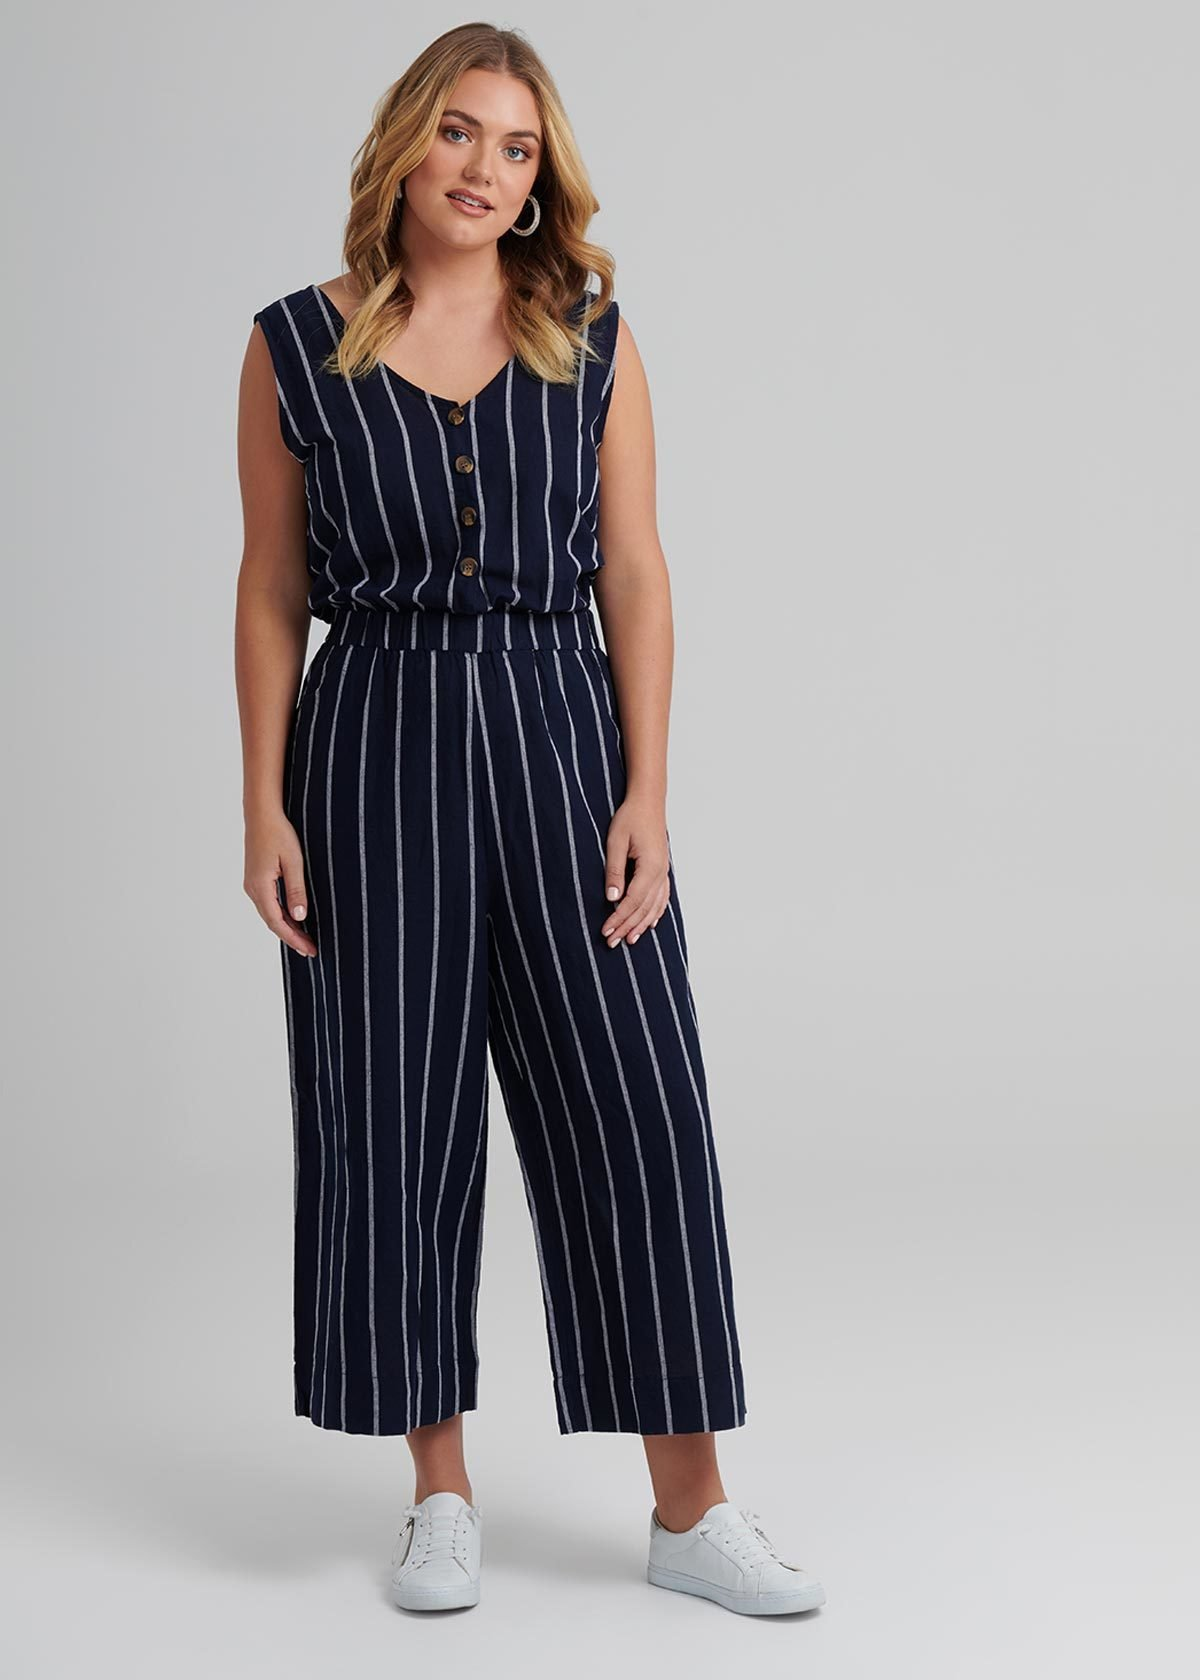 Taking Shape High Tide Linen Jumpsuit | Beanstalk Mums